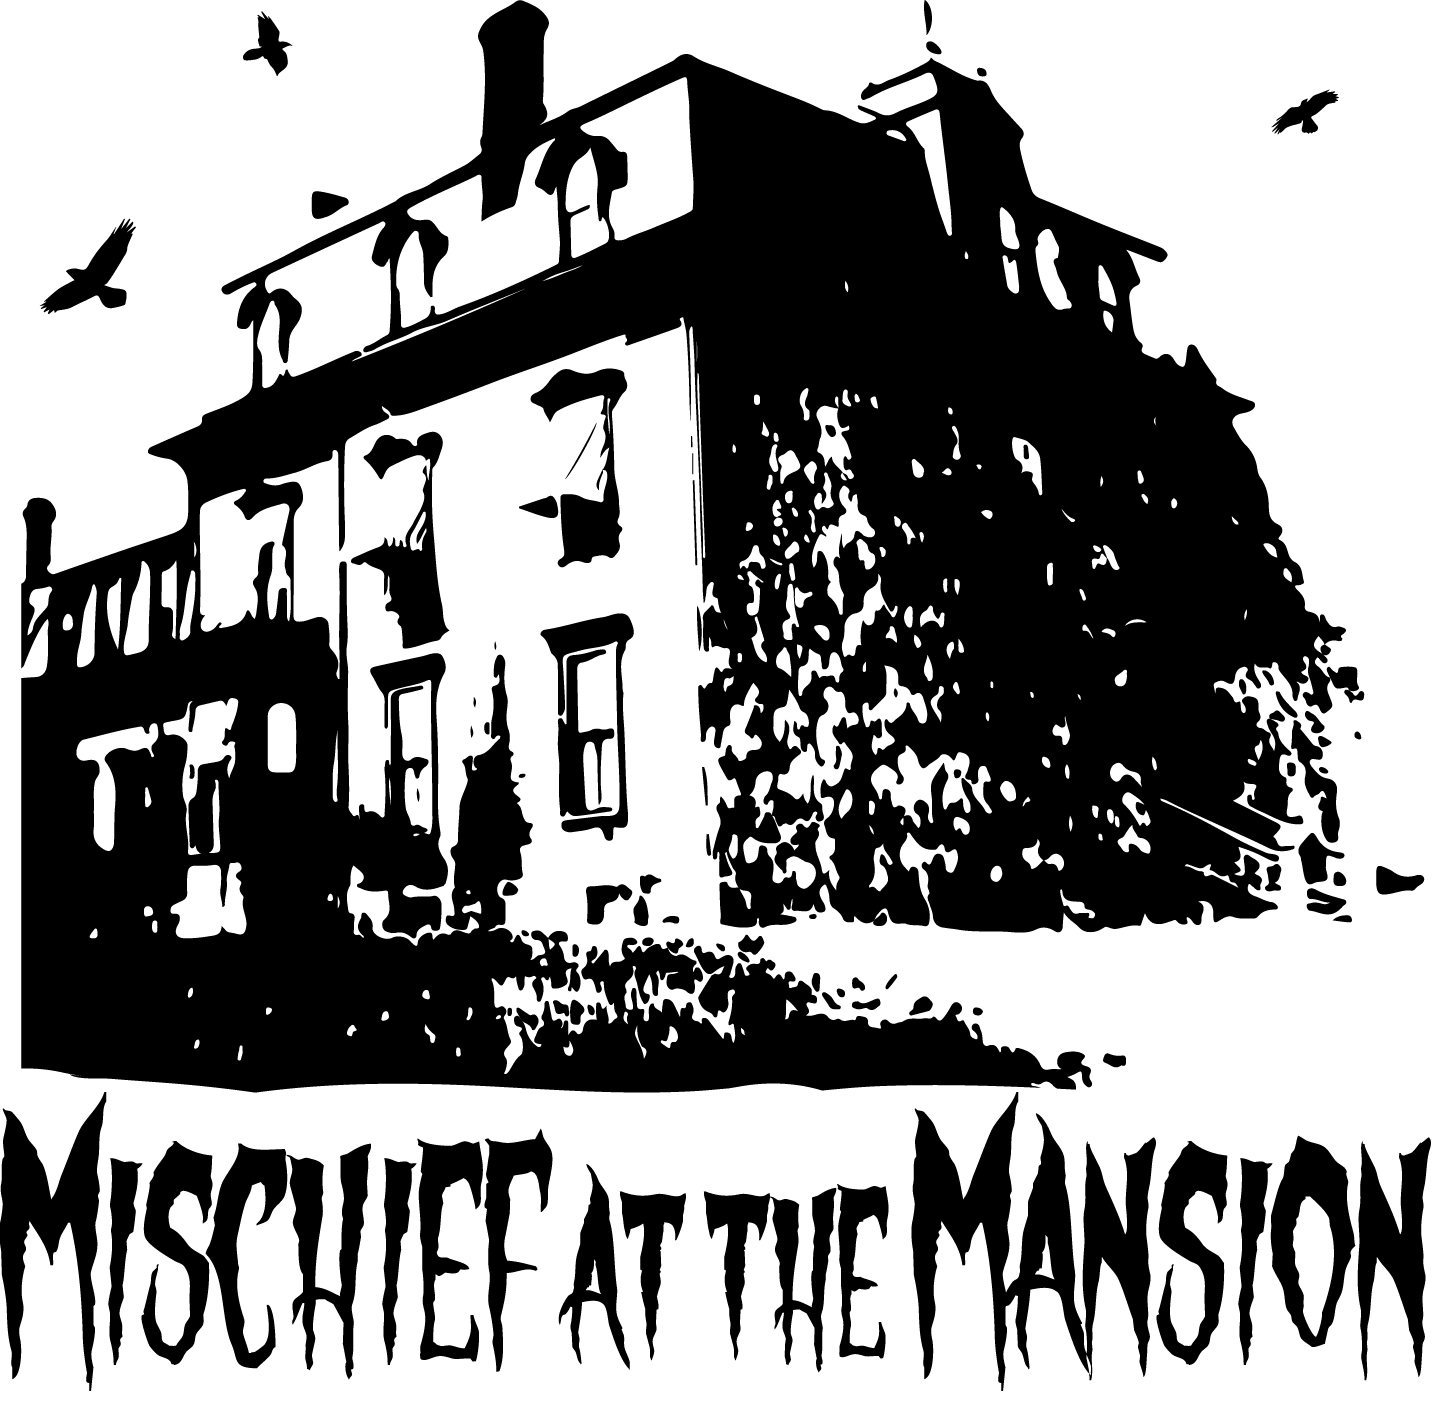 Mischief At The Mansion: A Gala To Benefit Wistariahurst